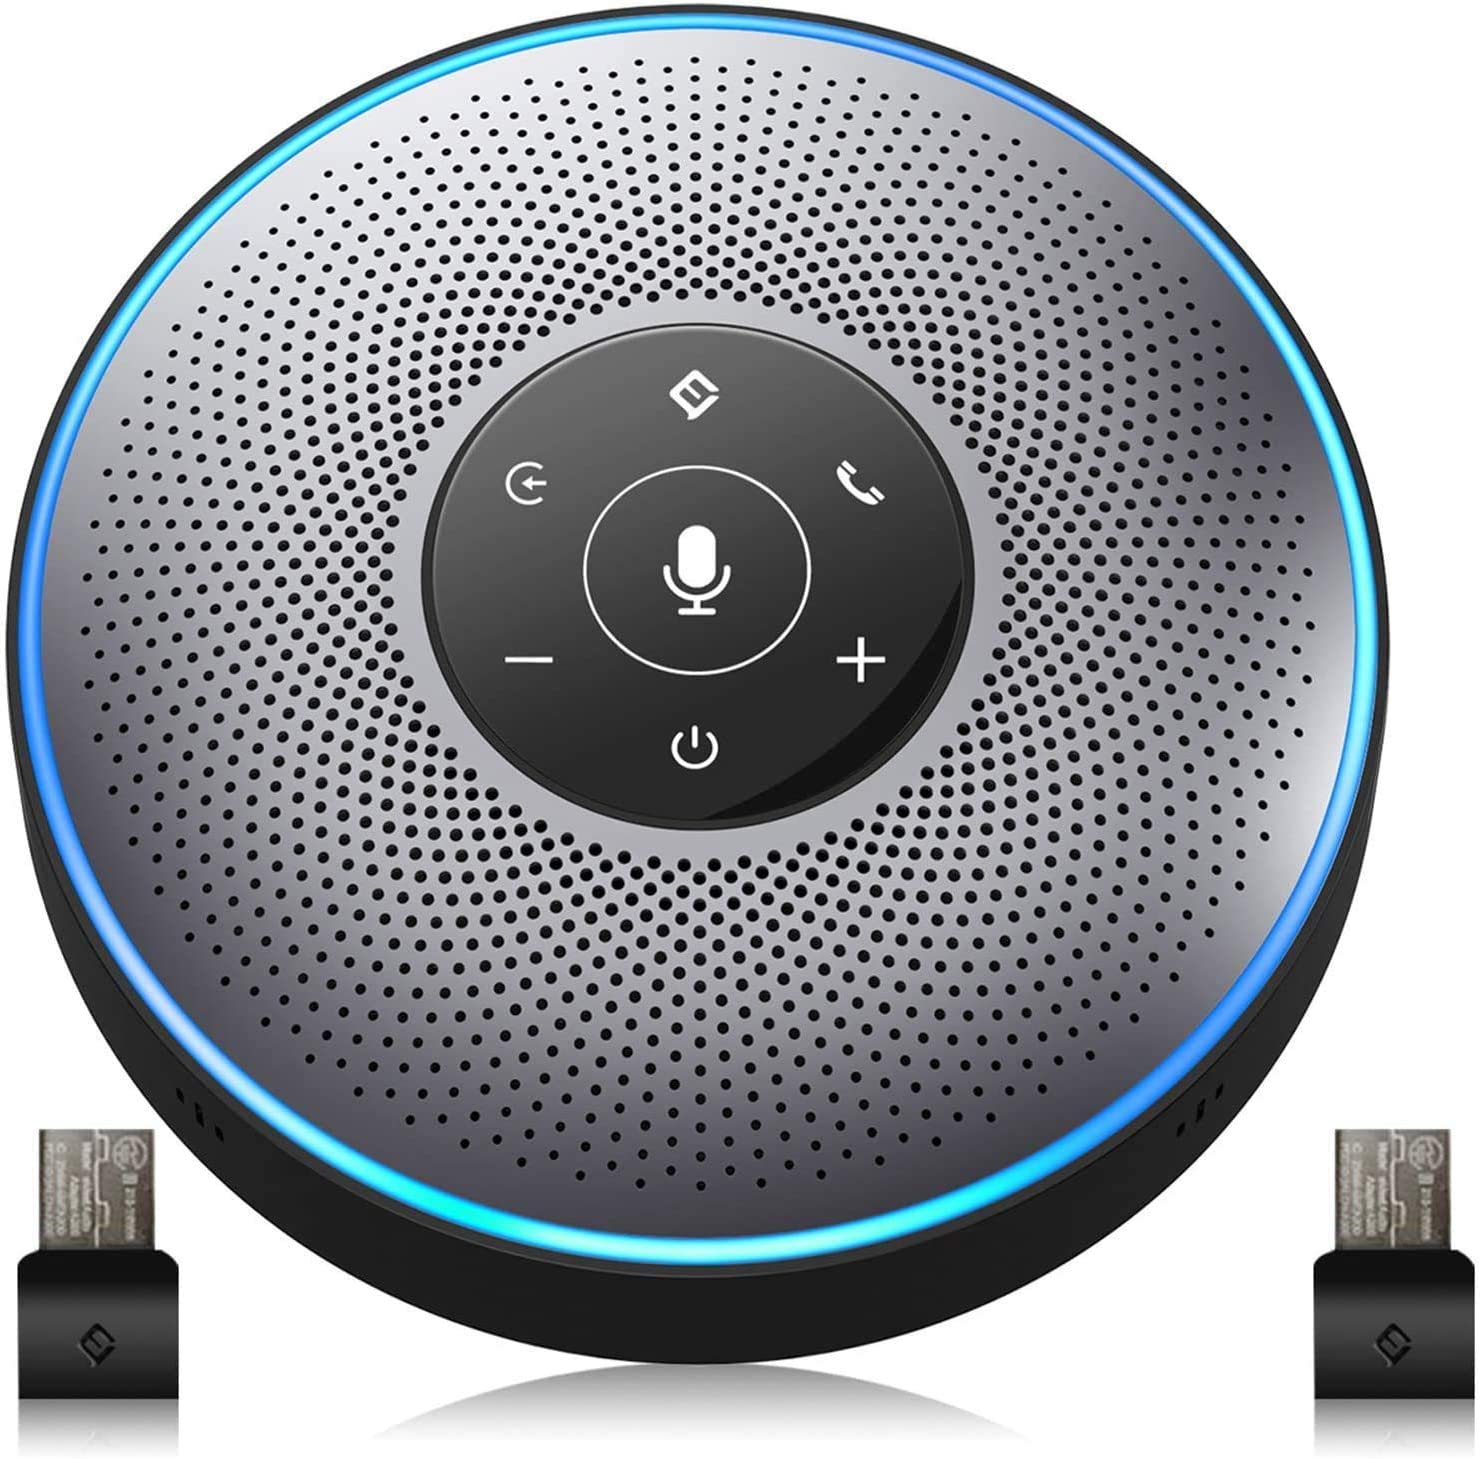 Bluetooth Speakerphone - M2 Gray Conference Speaker w/ 2 Dongles, Idea for Home Office 360º Voice Pickup 4 AI Echo & Noise Canceling Microphones, Skype USB Speakerphone AUX in/Out for up to 8 People